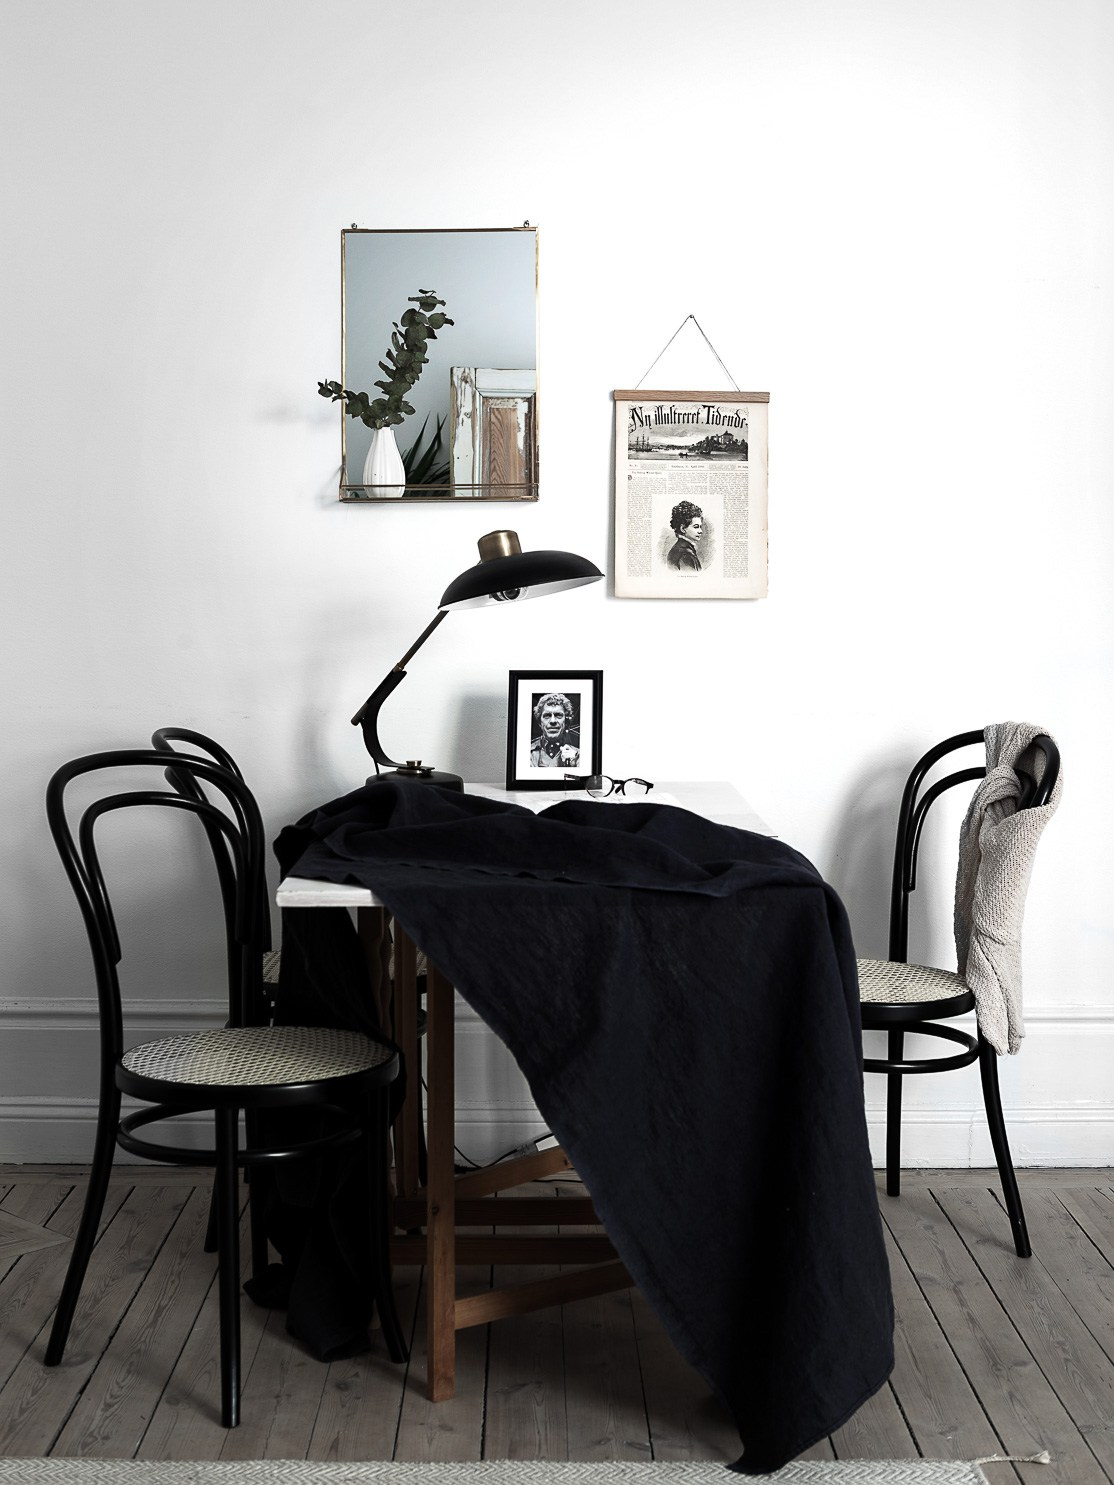 high ceilings apartment with wooden floors, white painted walls, danish design, wriing table